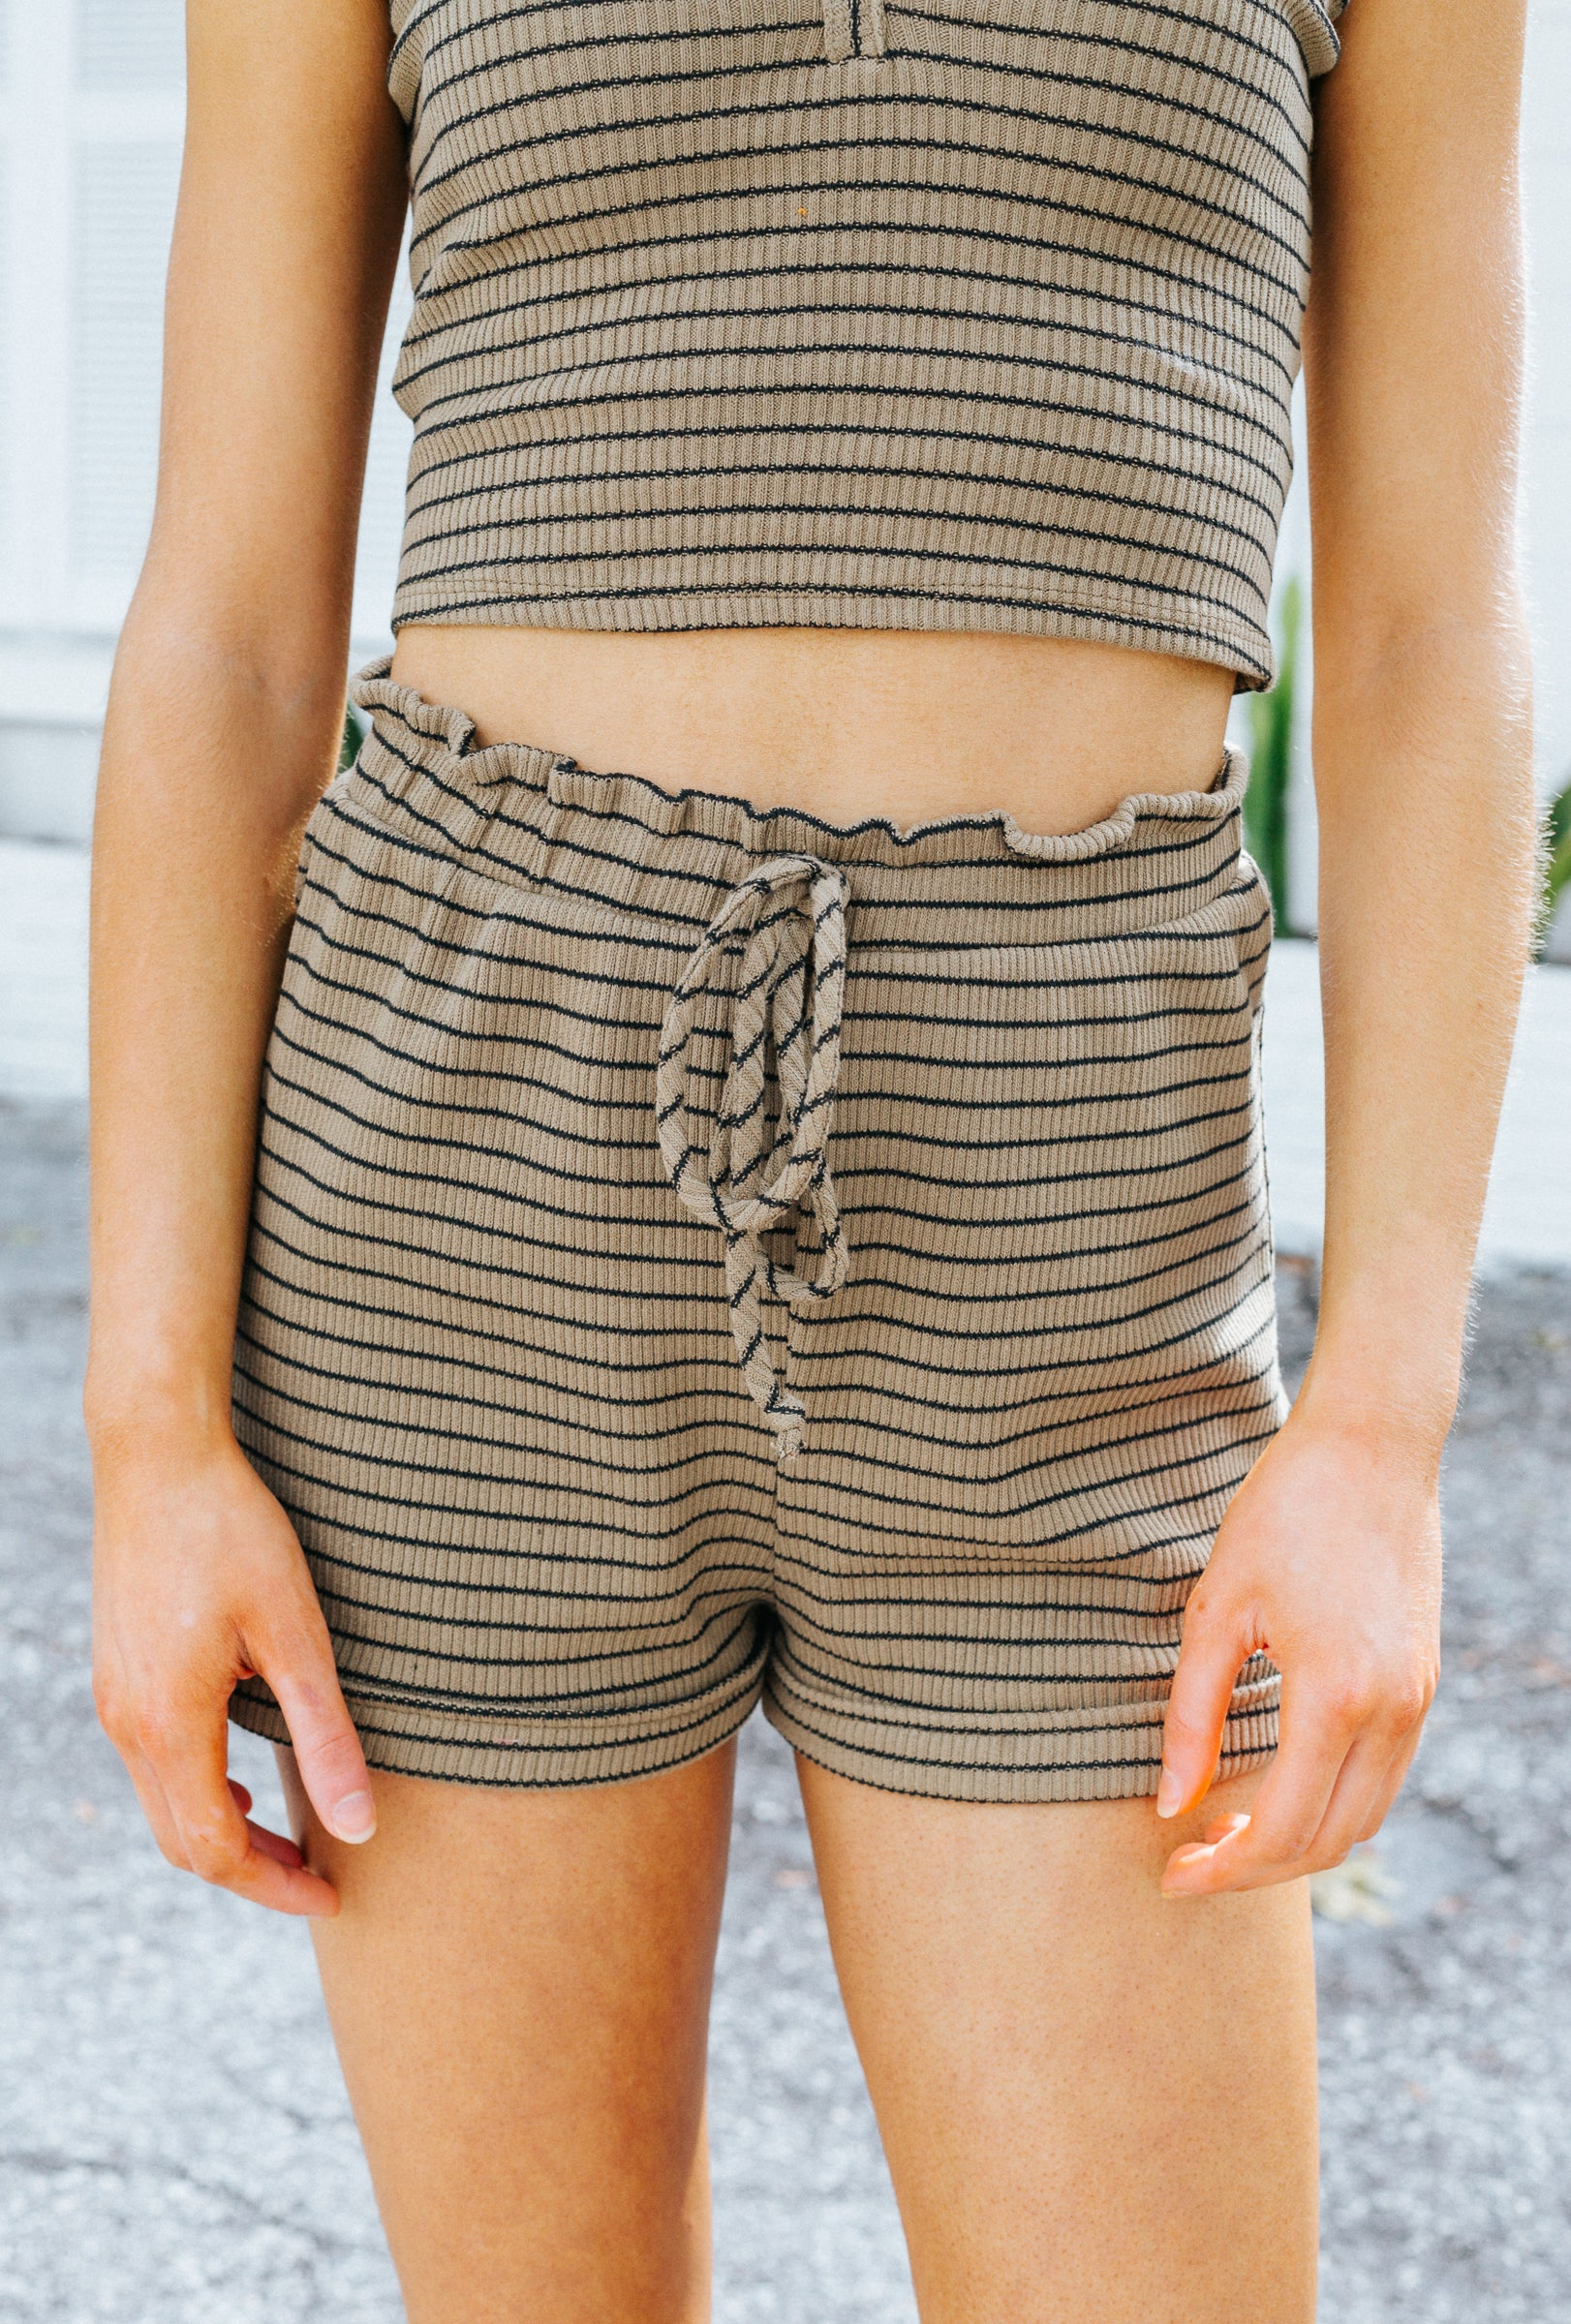 Black stripes that go across the ribbed fabric. It has an elastic waistband with a faux drawstring tie and goes down into loose shorts with thick banded bottom hem.